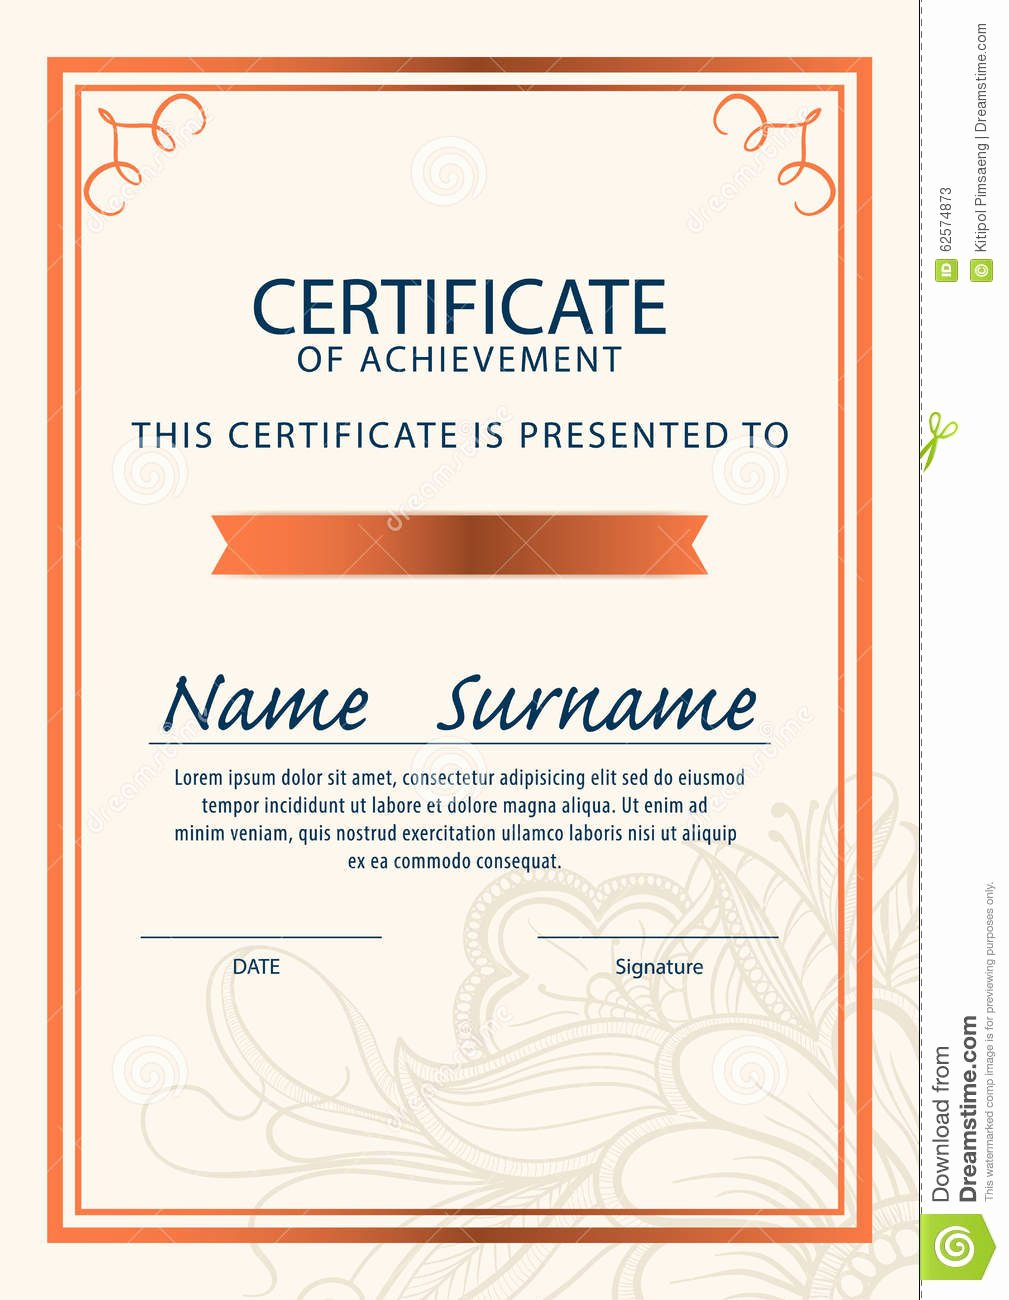 Size Of Certificate Paper Best Of Certificate Template Diploma A4 Size Vector Stock Vector